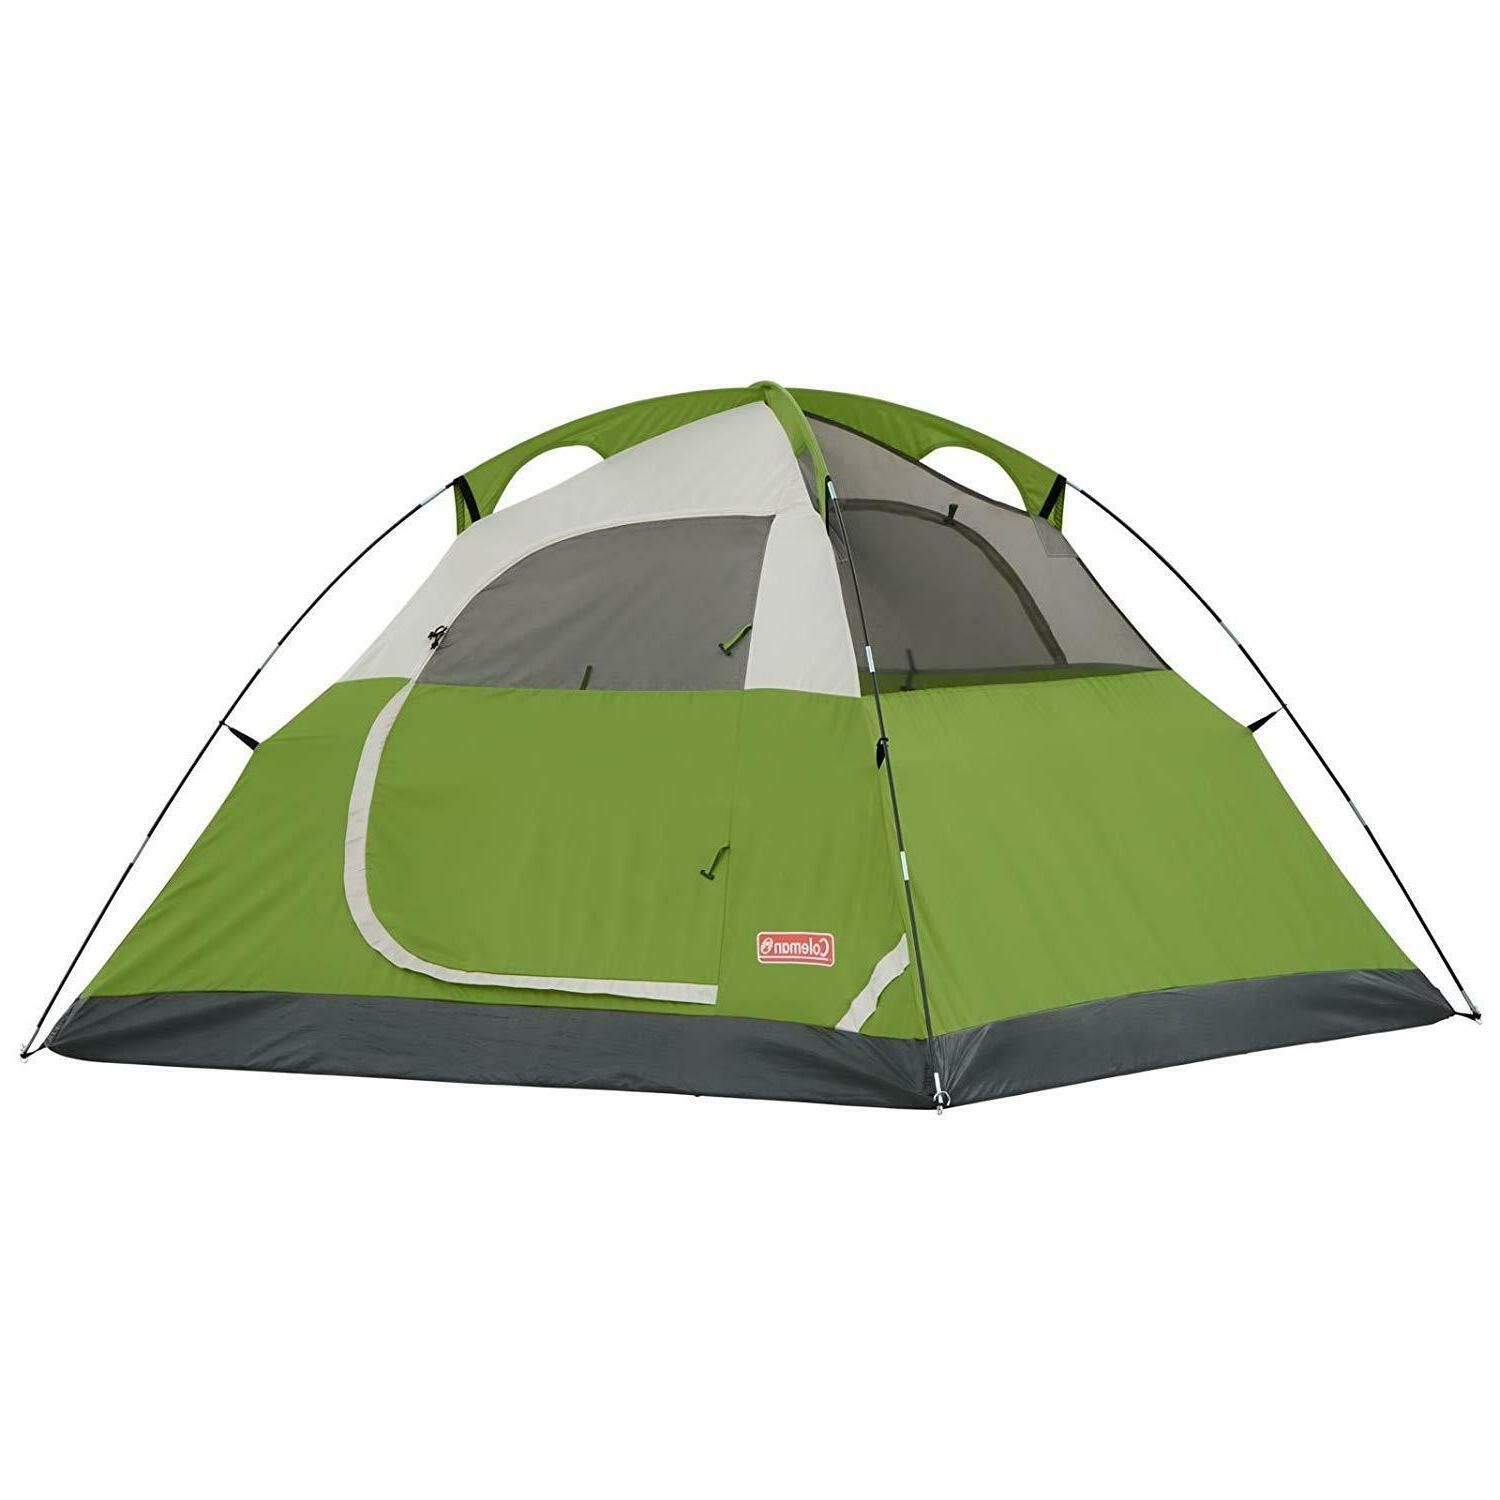 Coleman for Camping with to 6 person